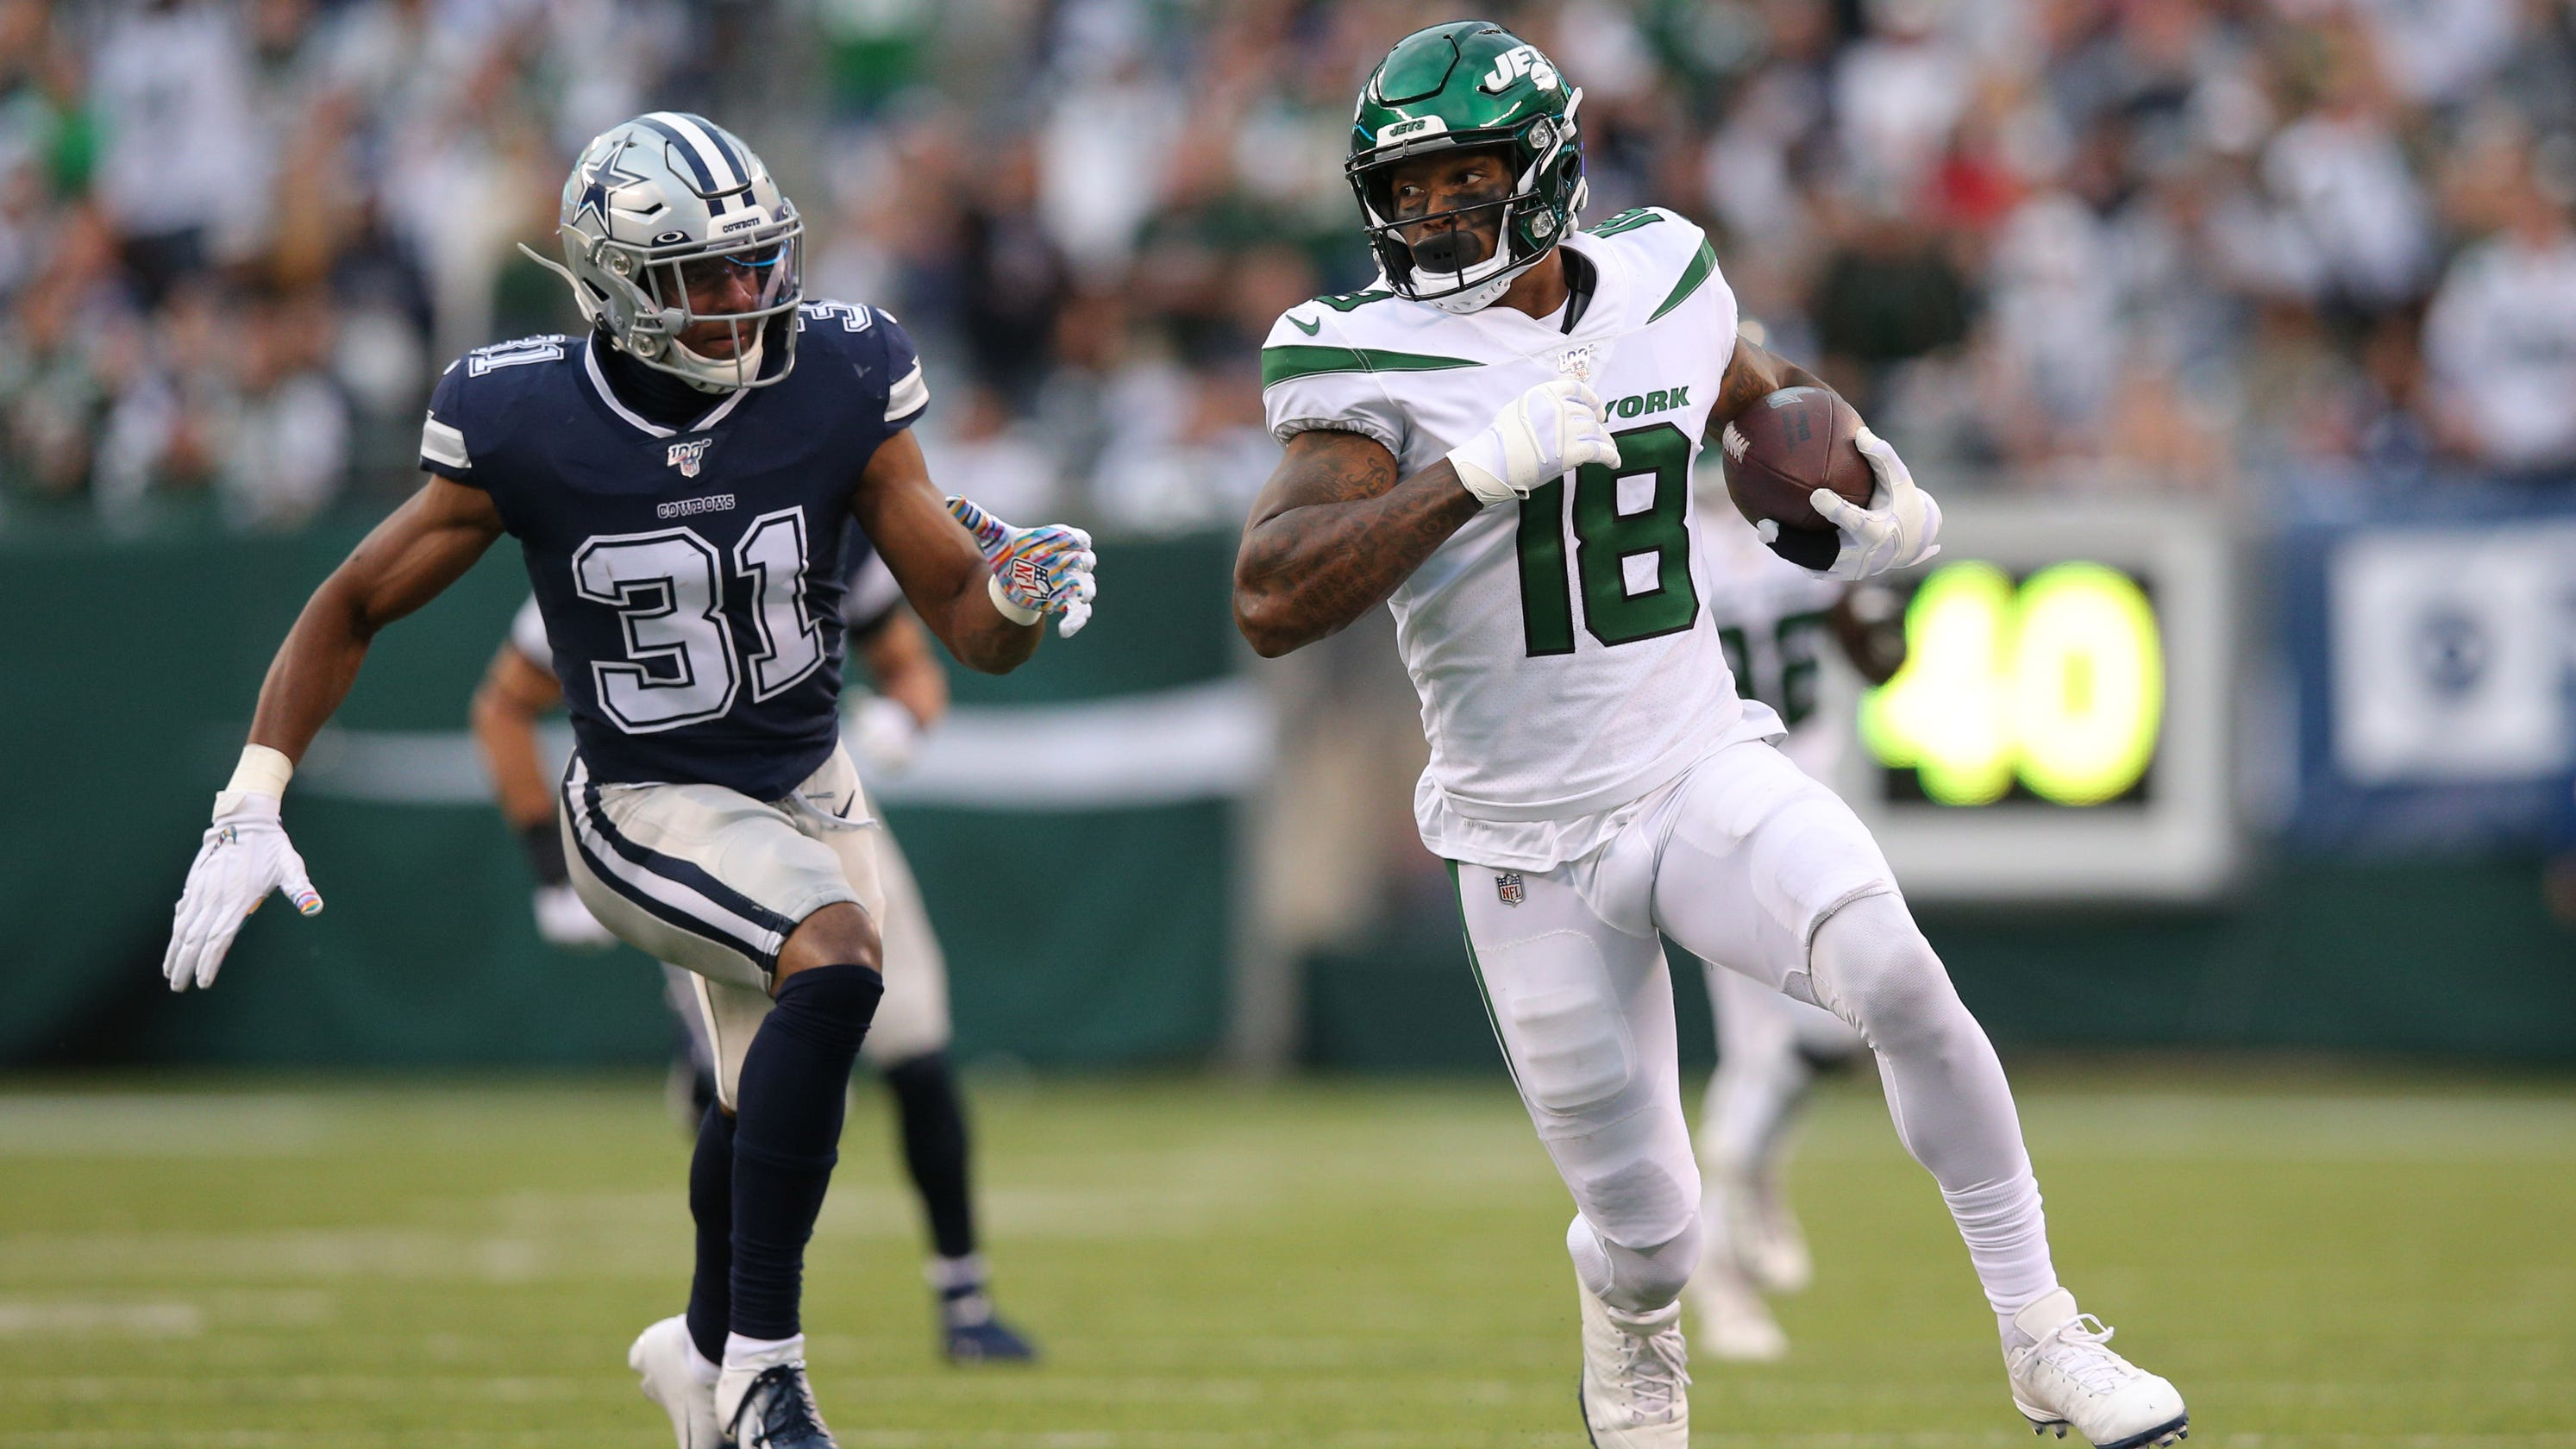 Jets stun Cowboys, secure first win of season in Sam Darnold's return